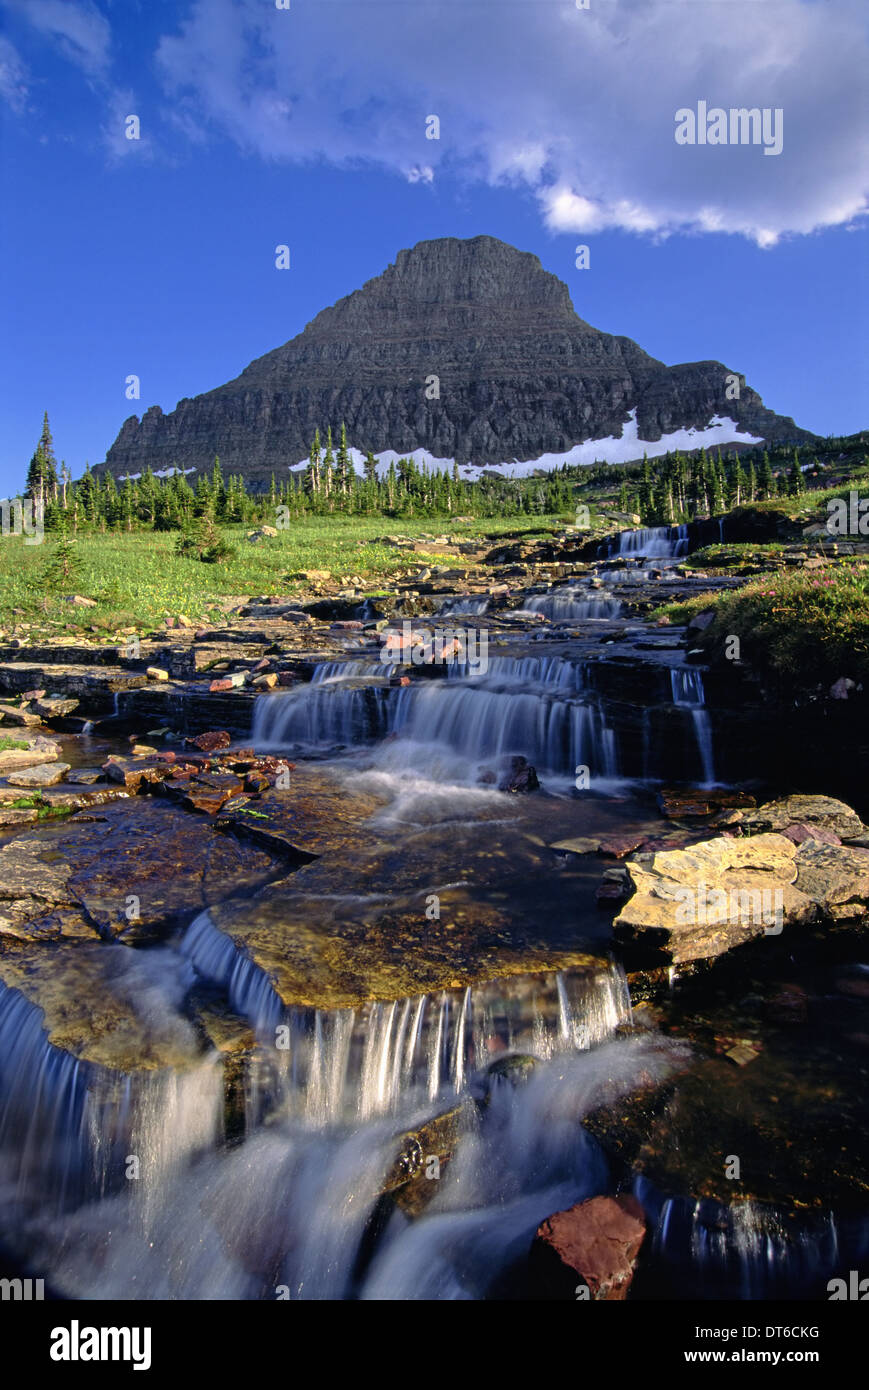 The landscape of Glacier National Park, to Mount Reynolds peak, and Logan Pass. Water flowing over rocks. - Stock Image